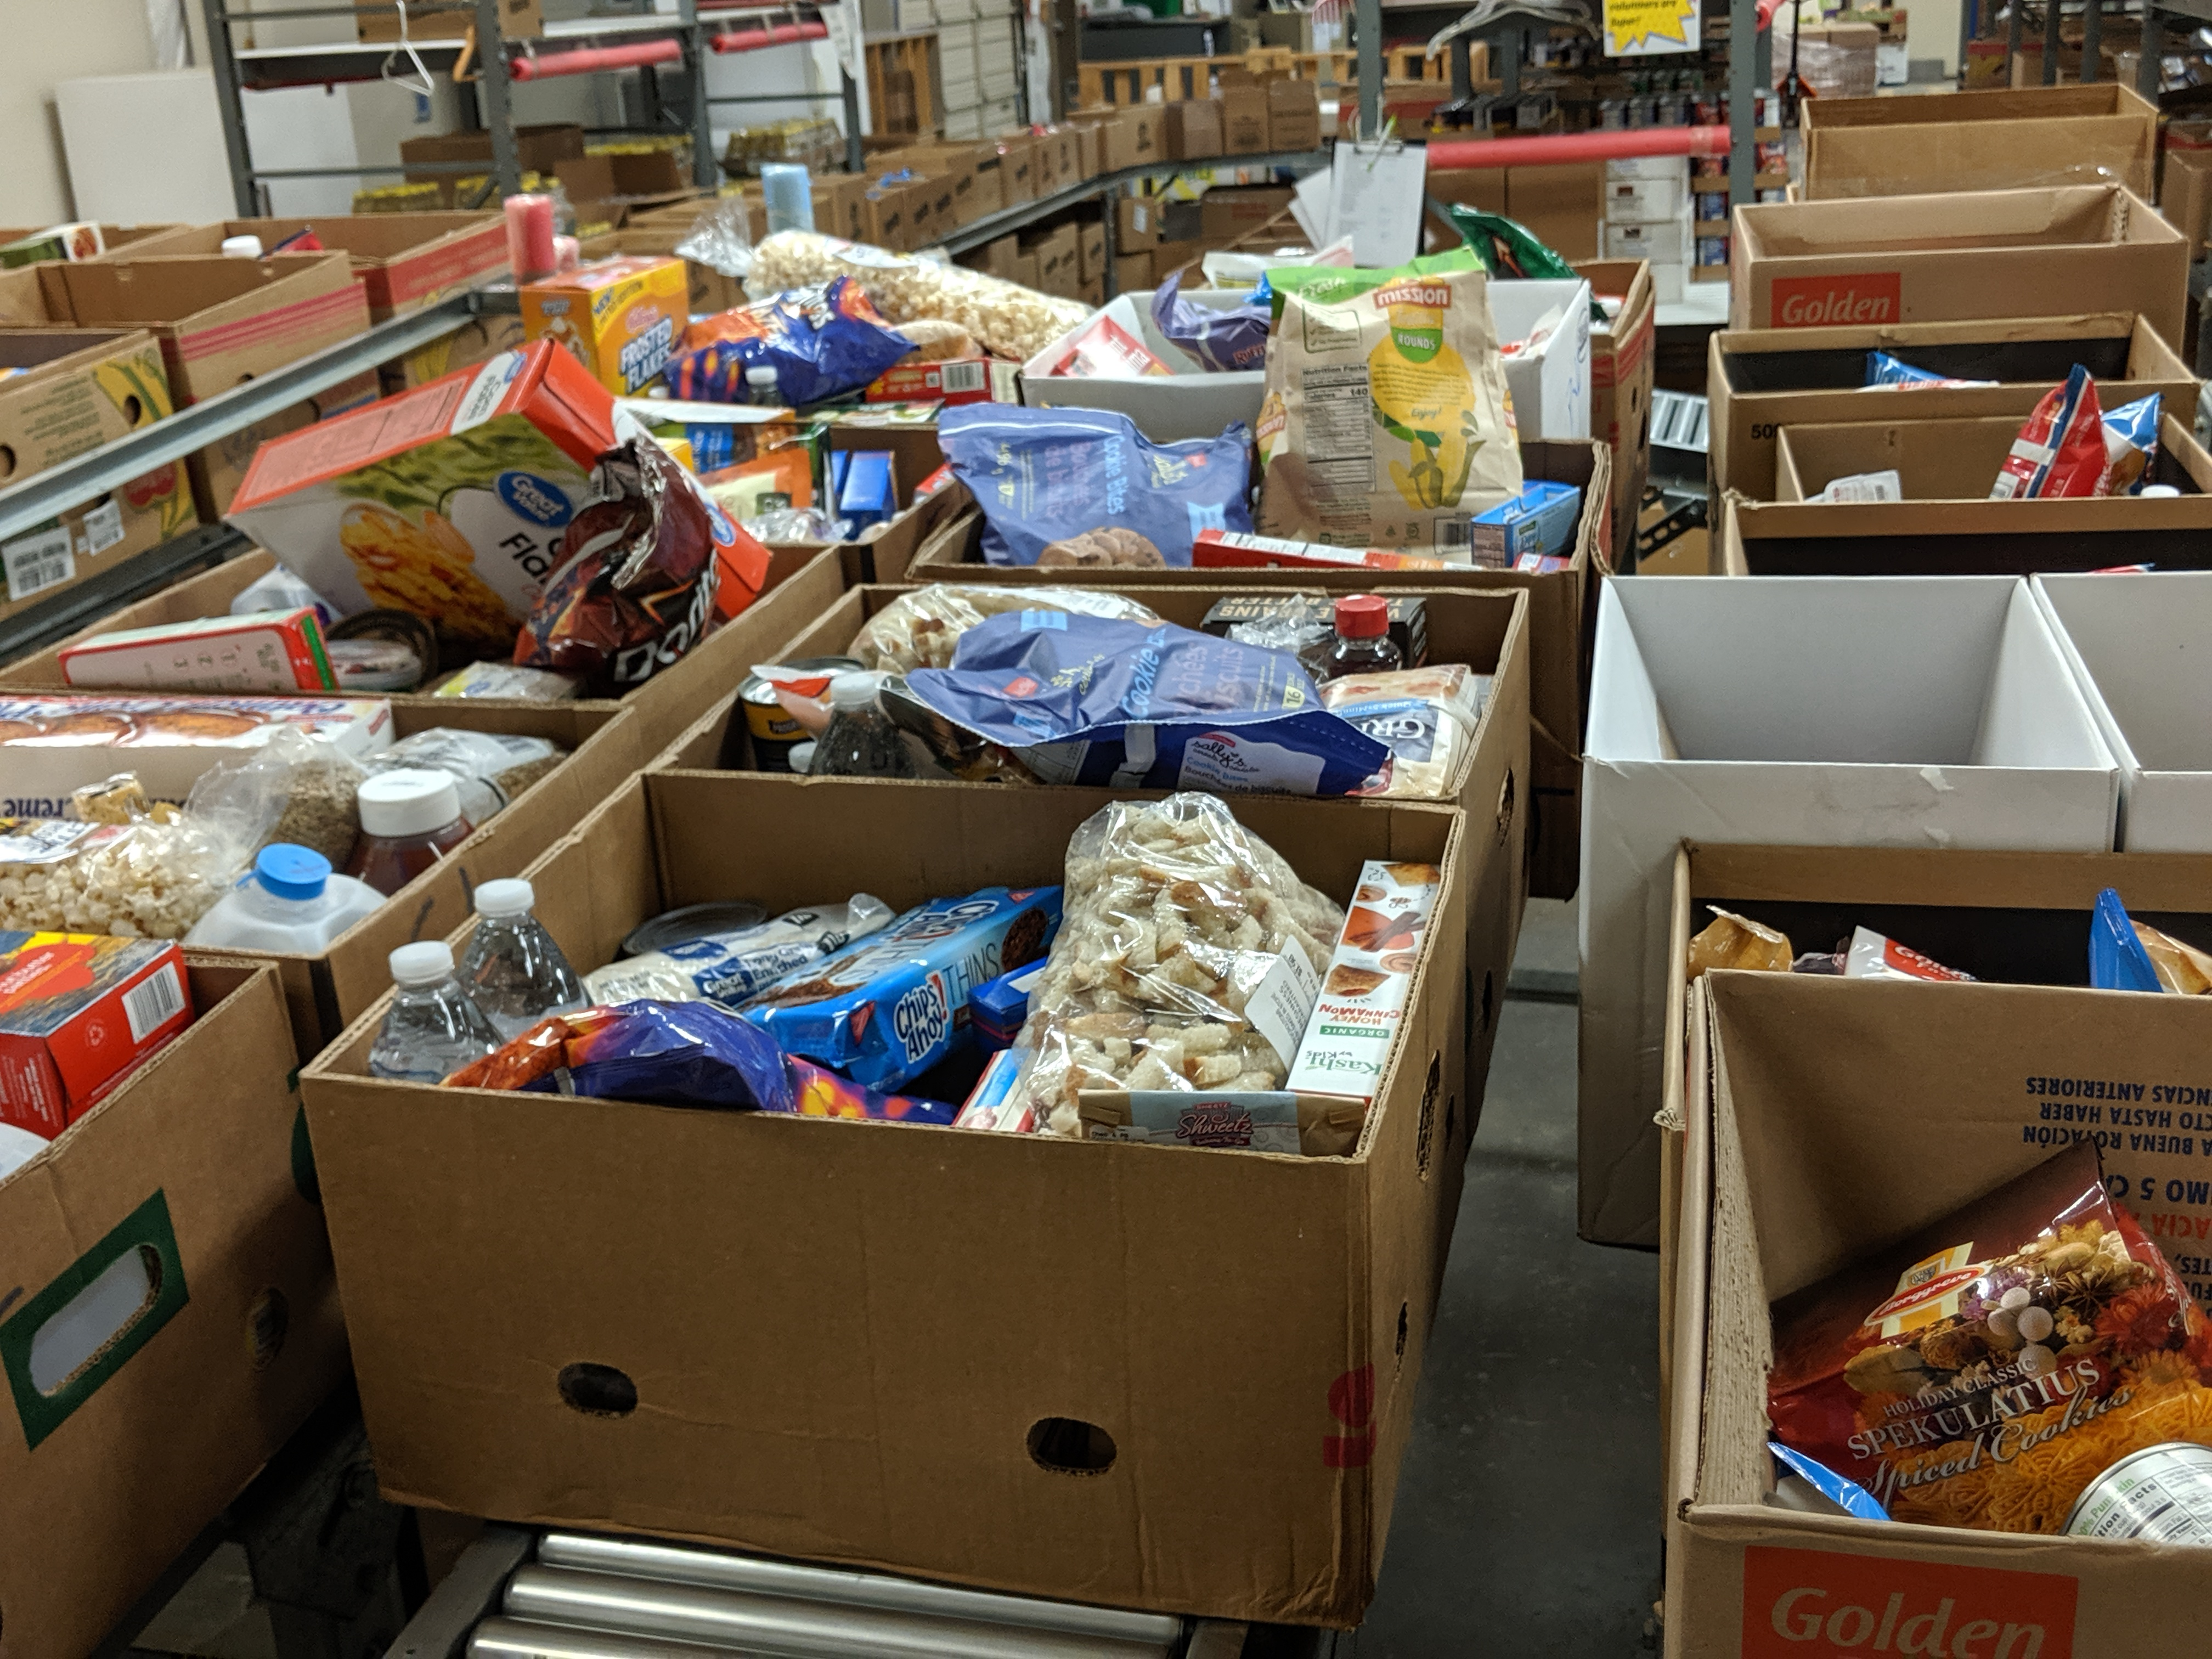 Our Towns: 'God's Storehouse' Food Pantry - The Atlantic